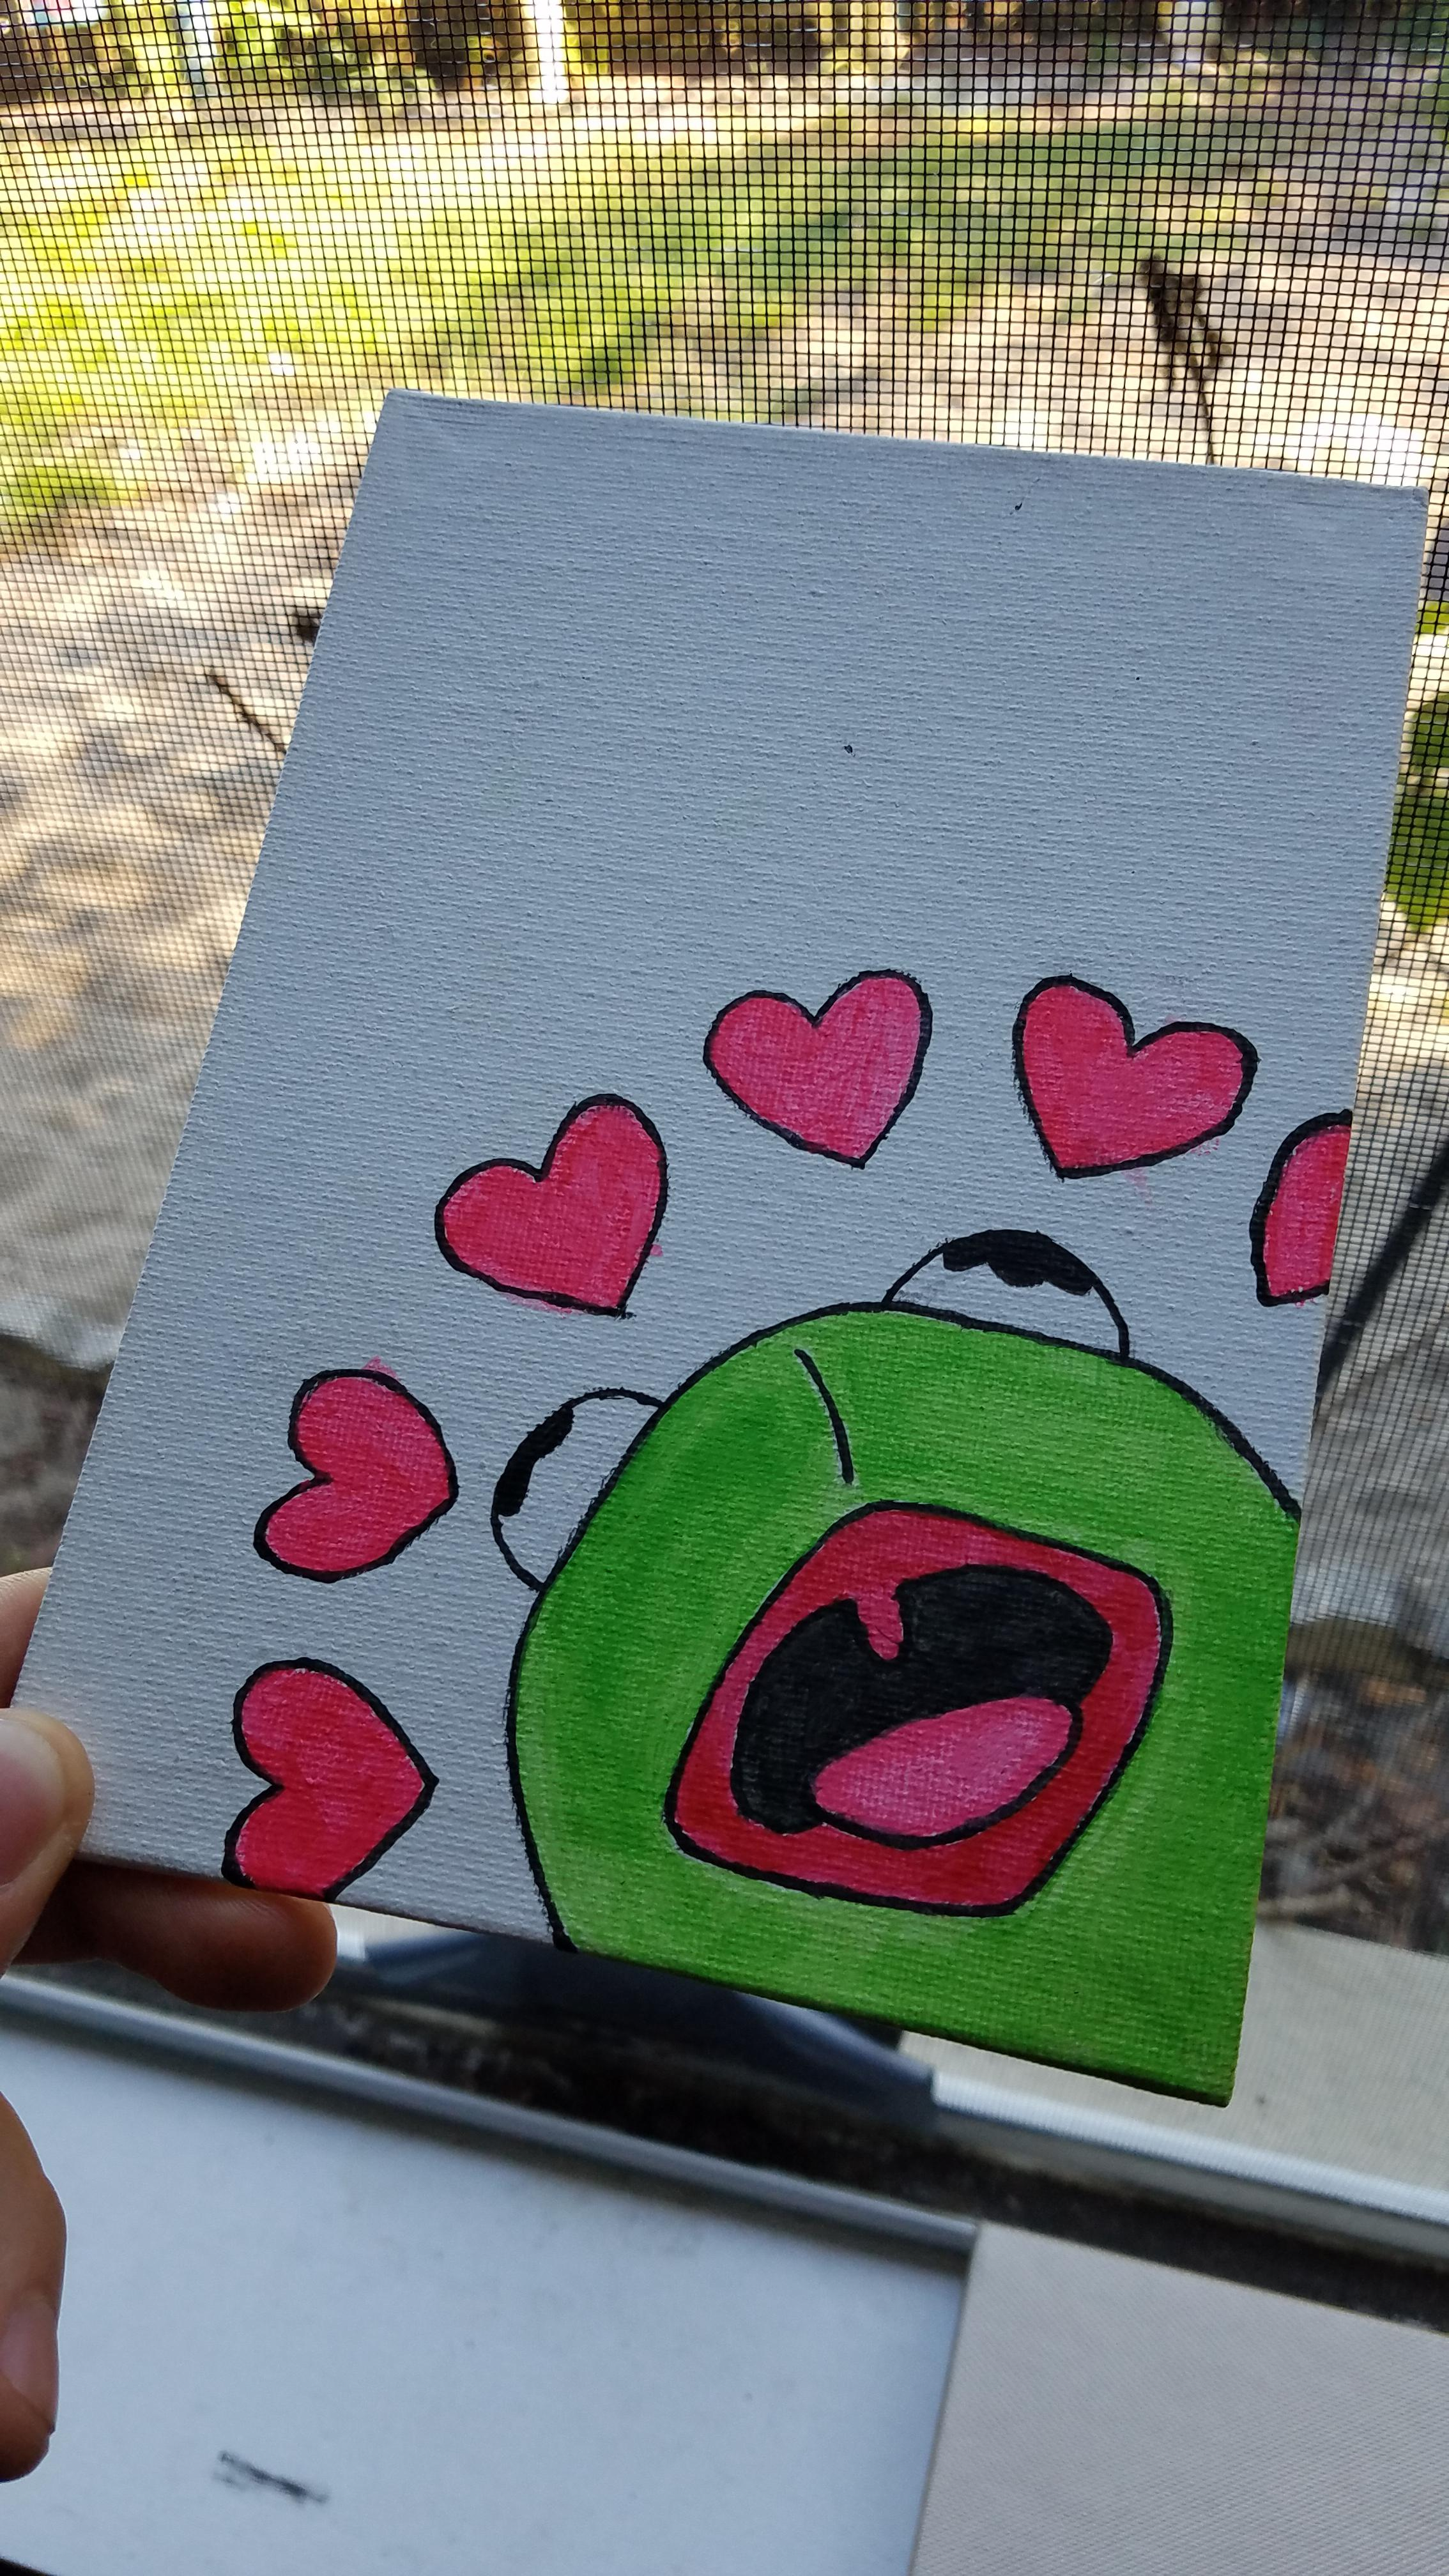 Kermit With Hearts Painting : kermit, hearts, painting, Kermit, Painting